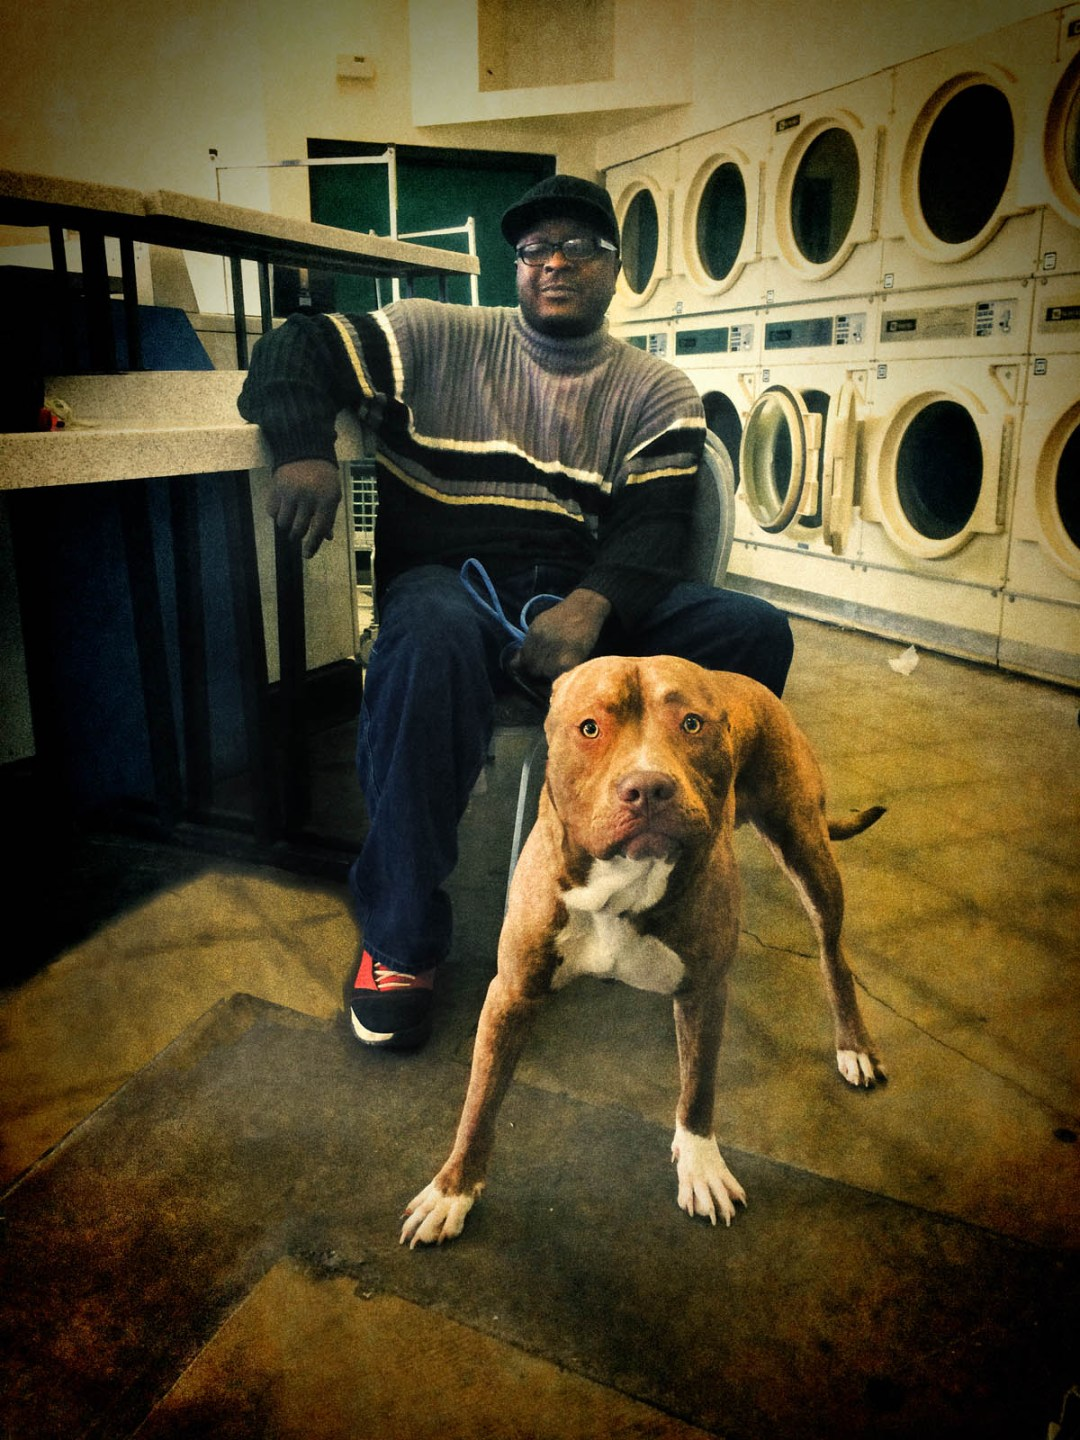 Pitbull in laundromat ©2014 Larry Zamba